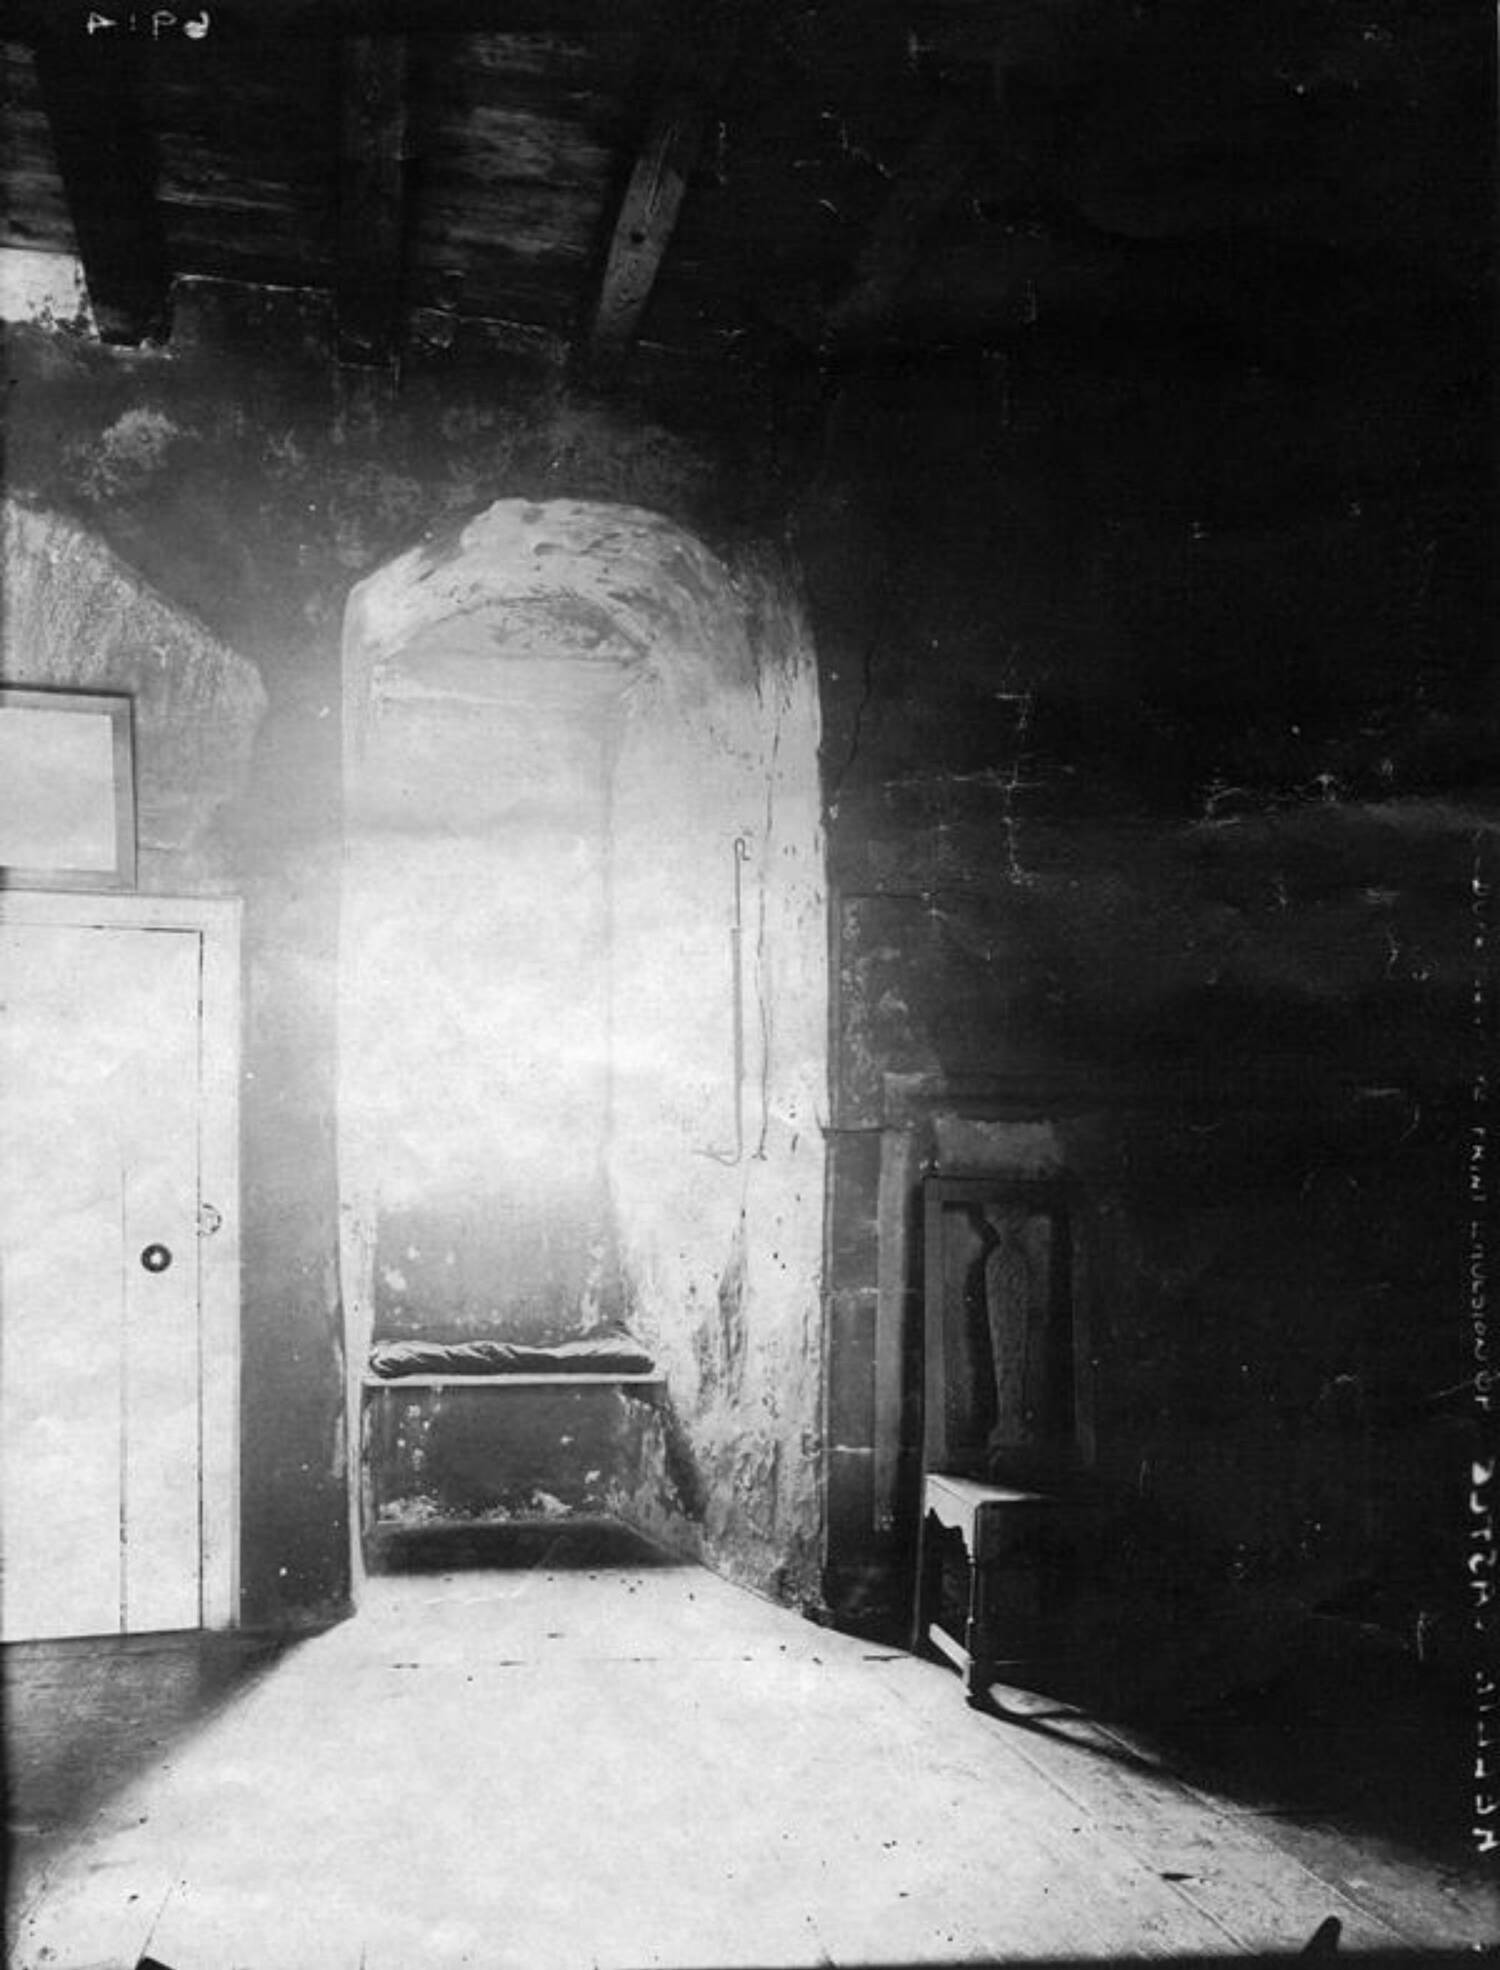 A black and white photograph of a window in the wall of a stone tower. Light streams through the window, illuminating the room.